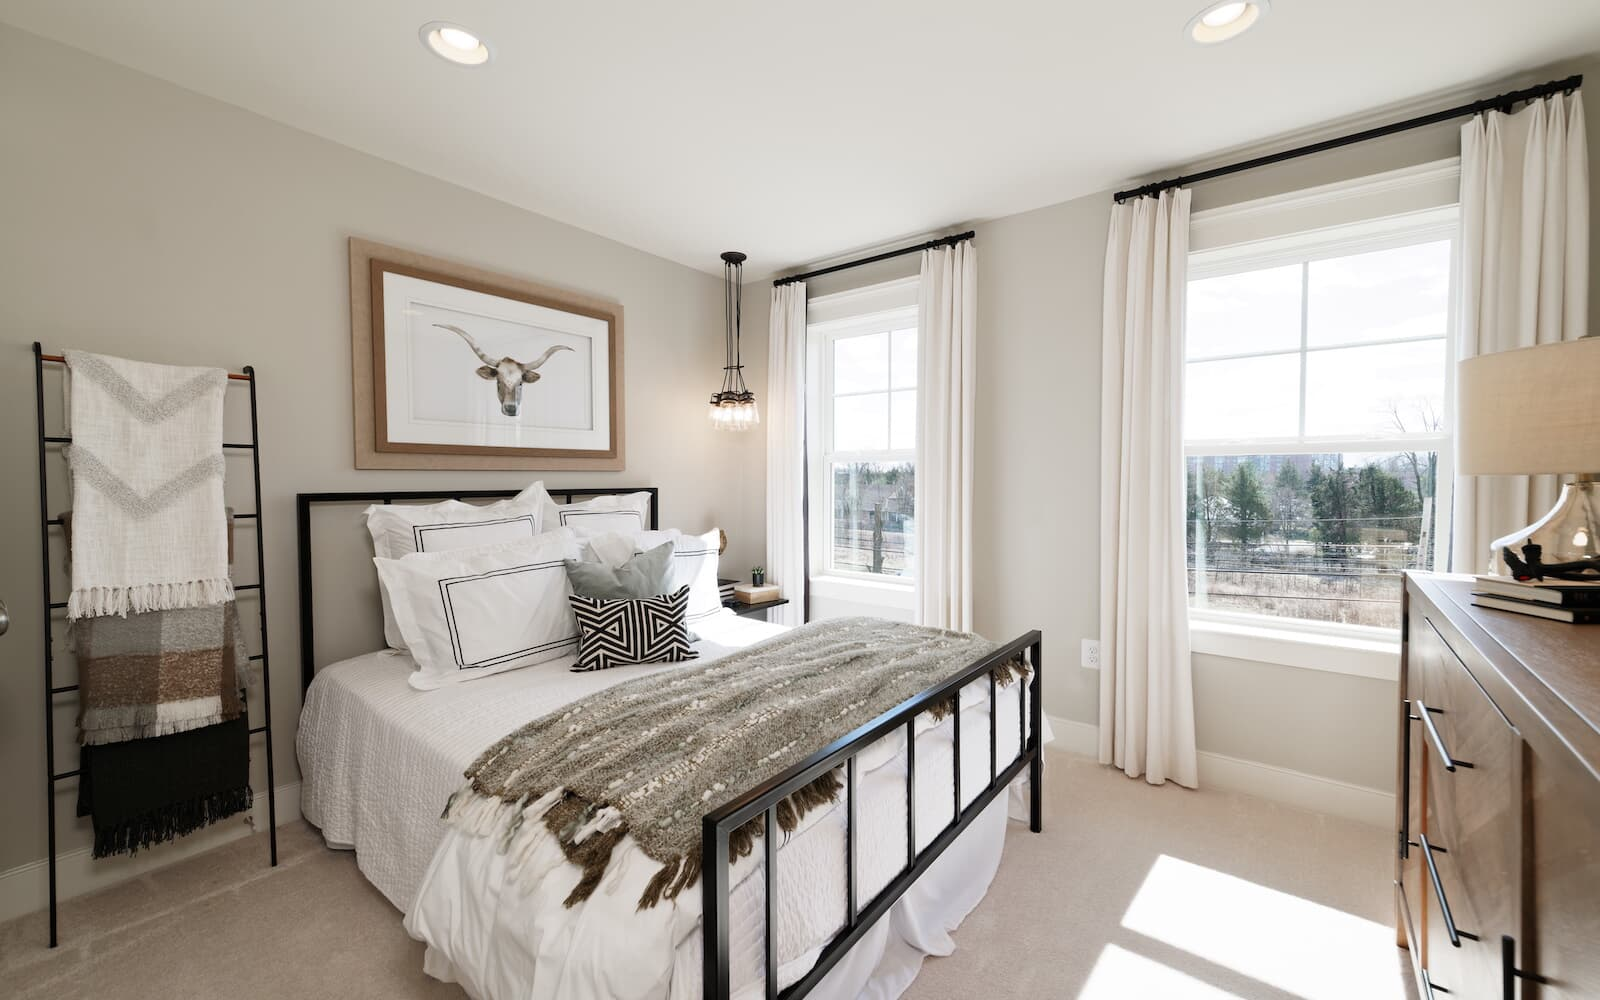 Aurora-bedroom2-townhomes-silver-spring-md-bradfords-landing-brookfield-residential